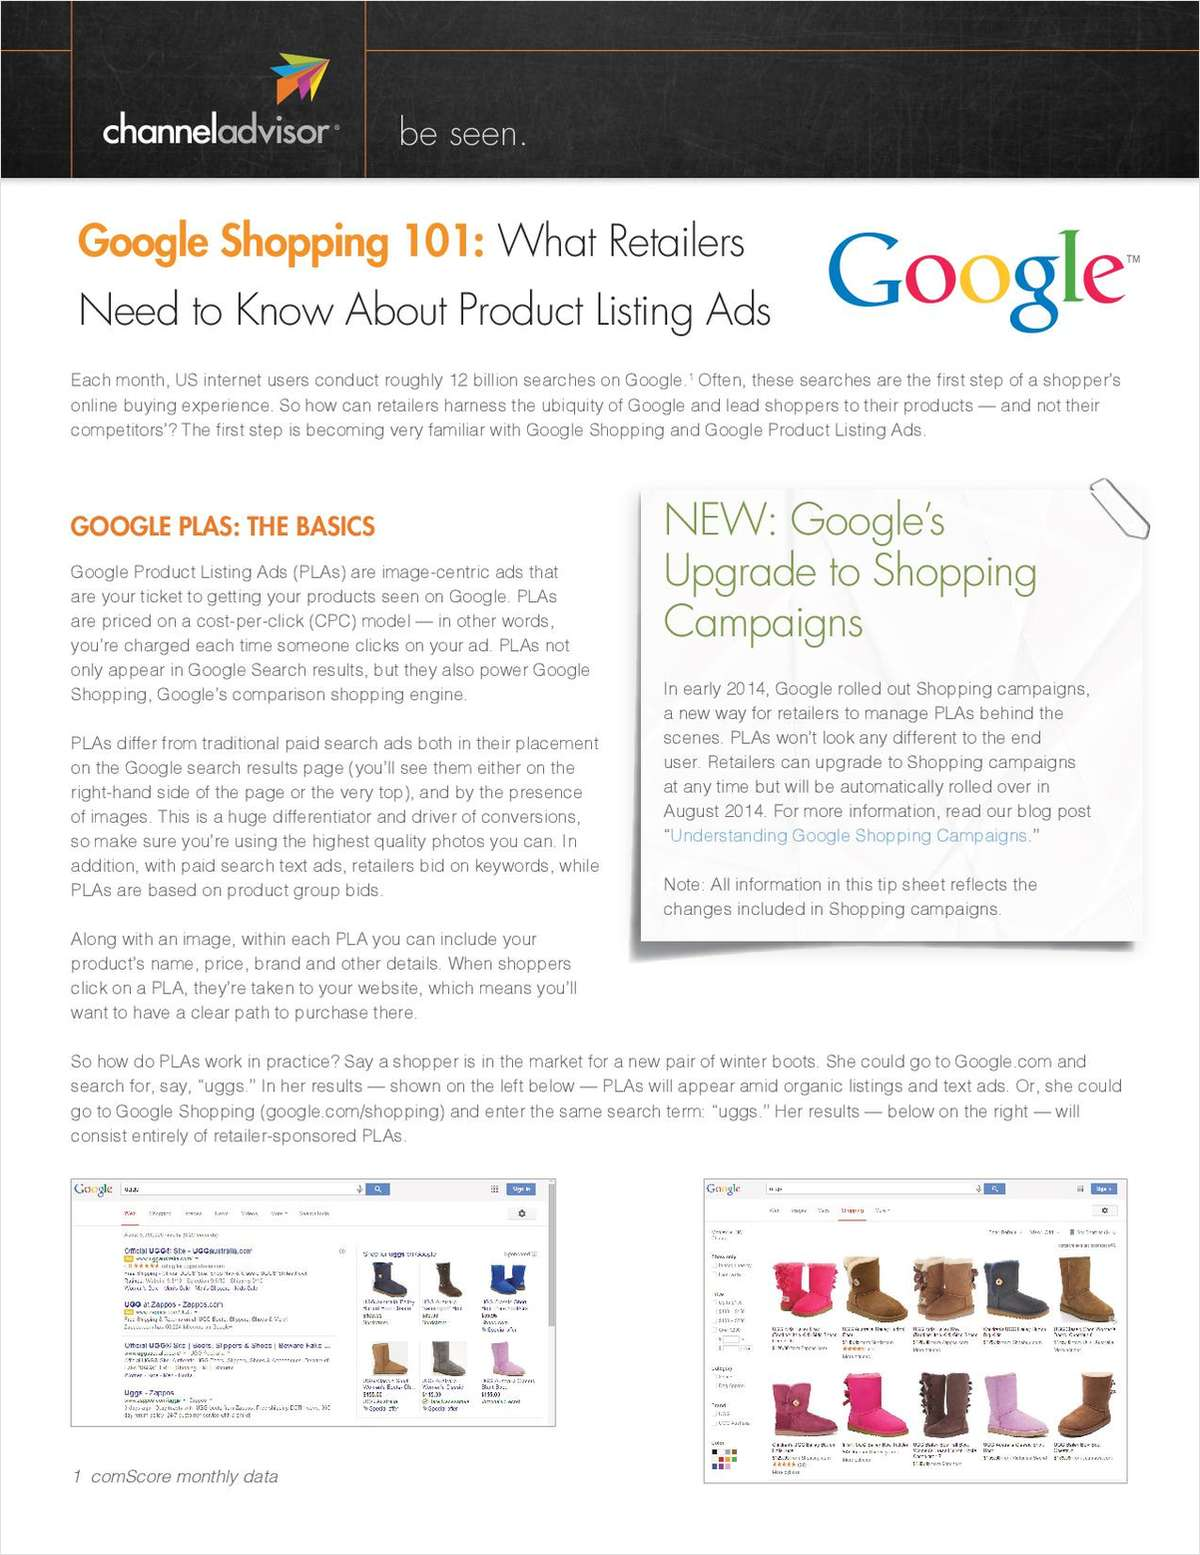 Google Shopping 101: What Retailers Need to Know About Product Listing Ads